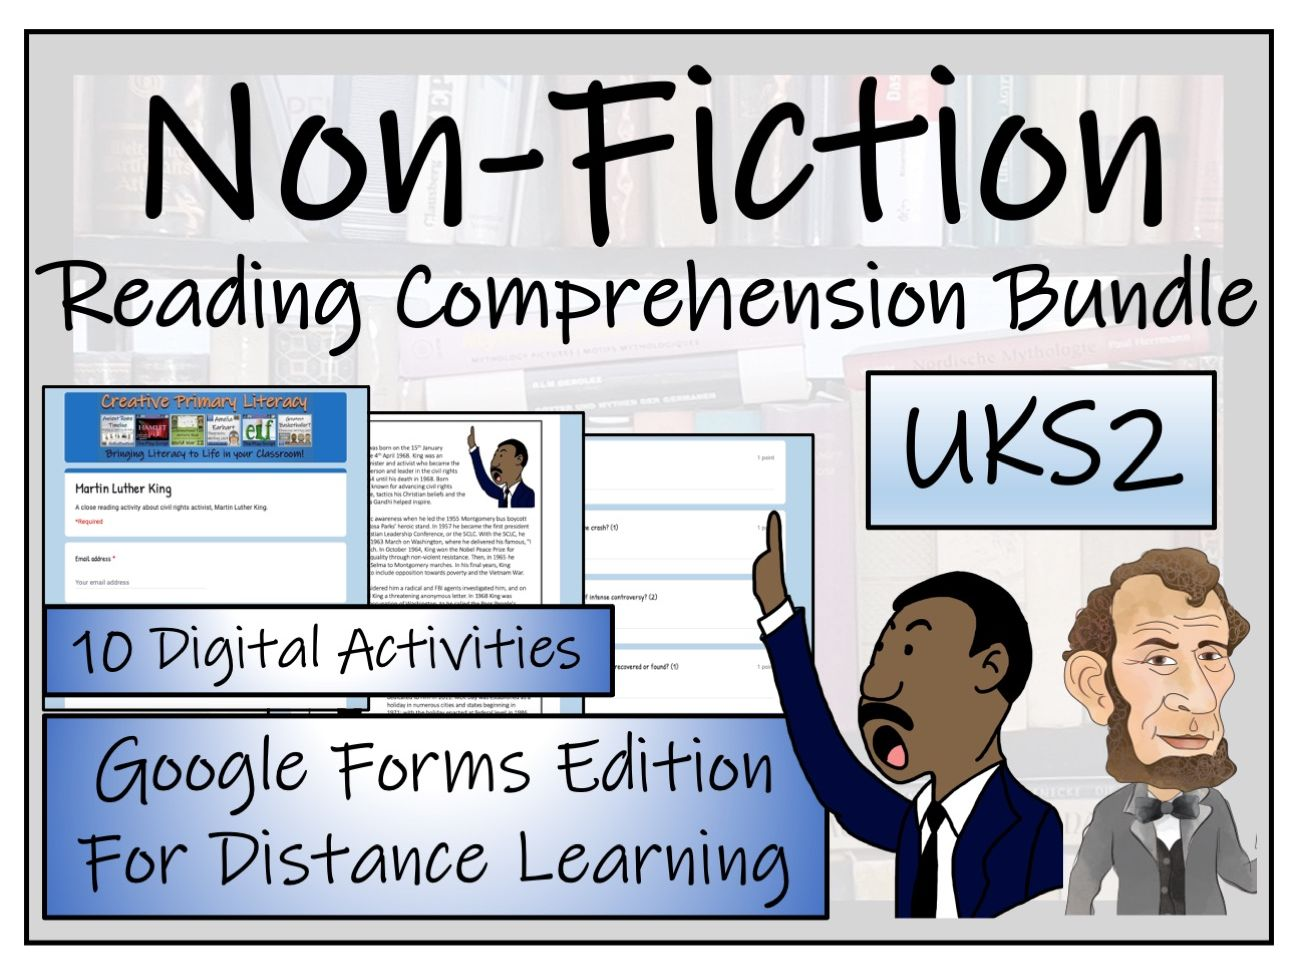 UKS2 Non-Fiction Collection; Volume 1 - Reading Comprehension & Distance Learning Bundle